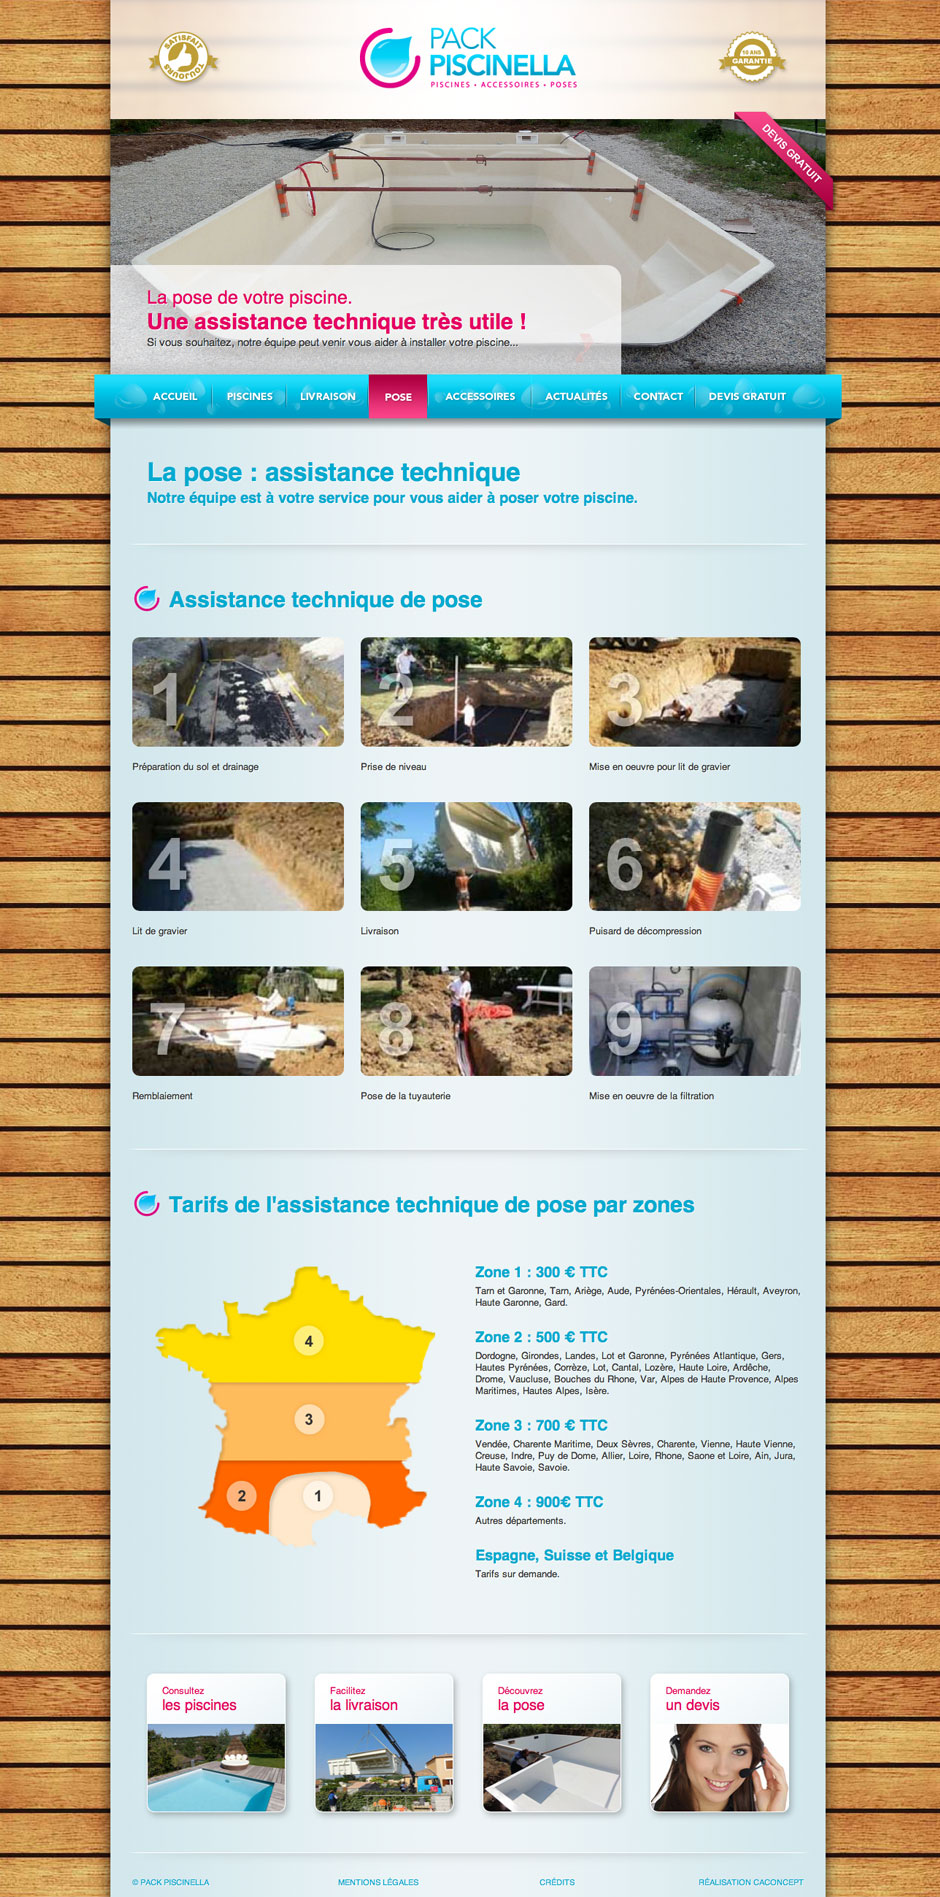 graphiste-montpellier-creation-pack-piscinella-agence-communication-montpellier-caconcept-alexis-cretin-6